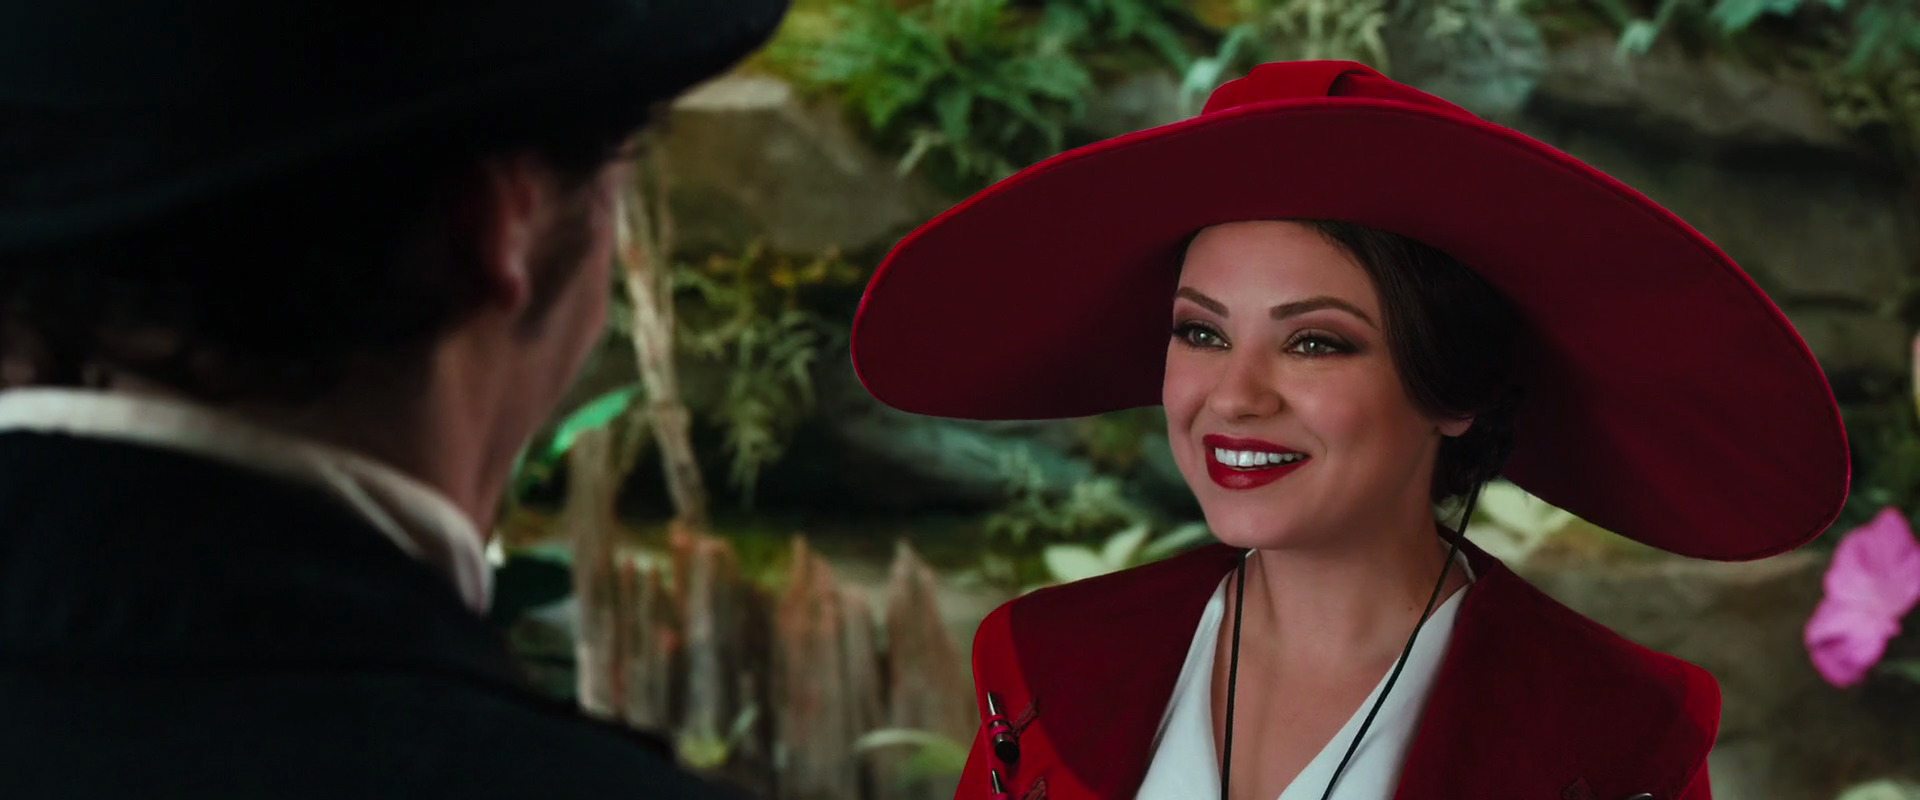 Mila Kunis as Theodora Oz The Great and Powerful picture image